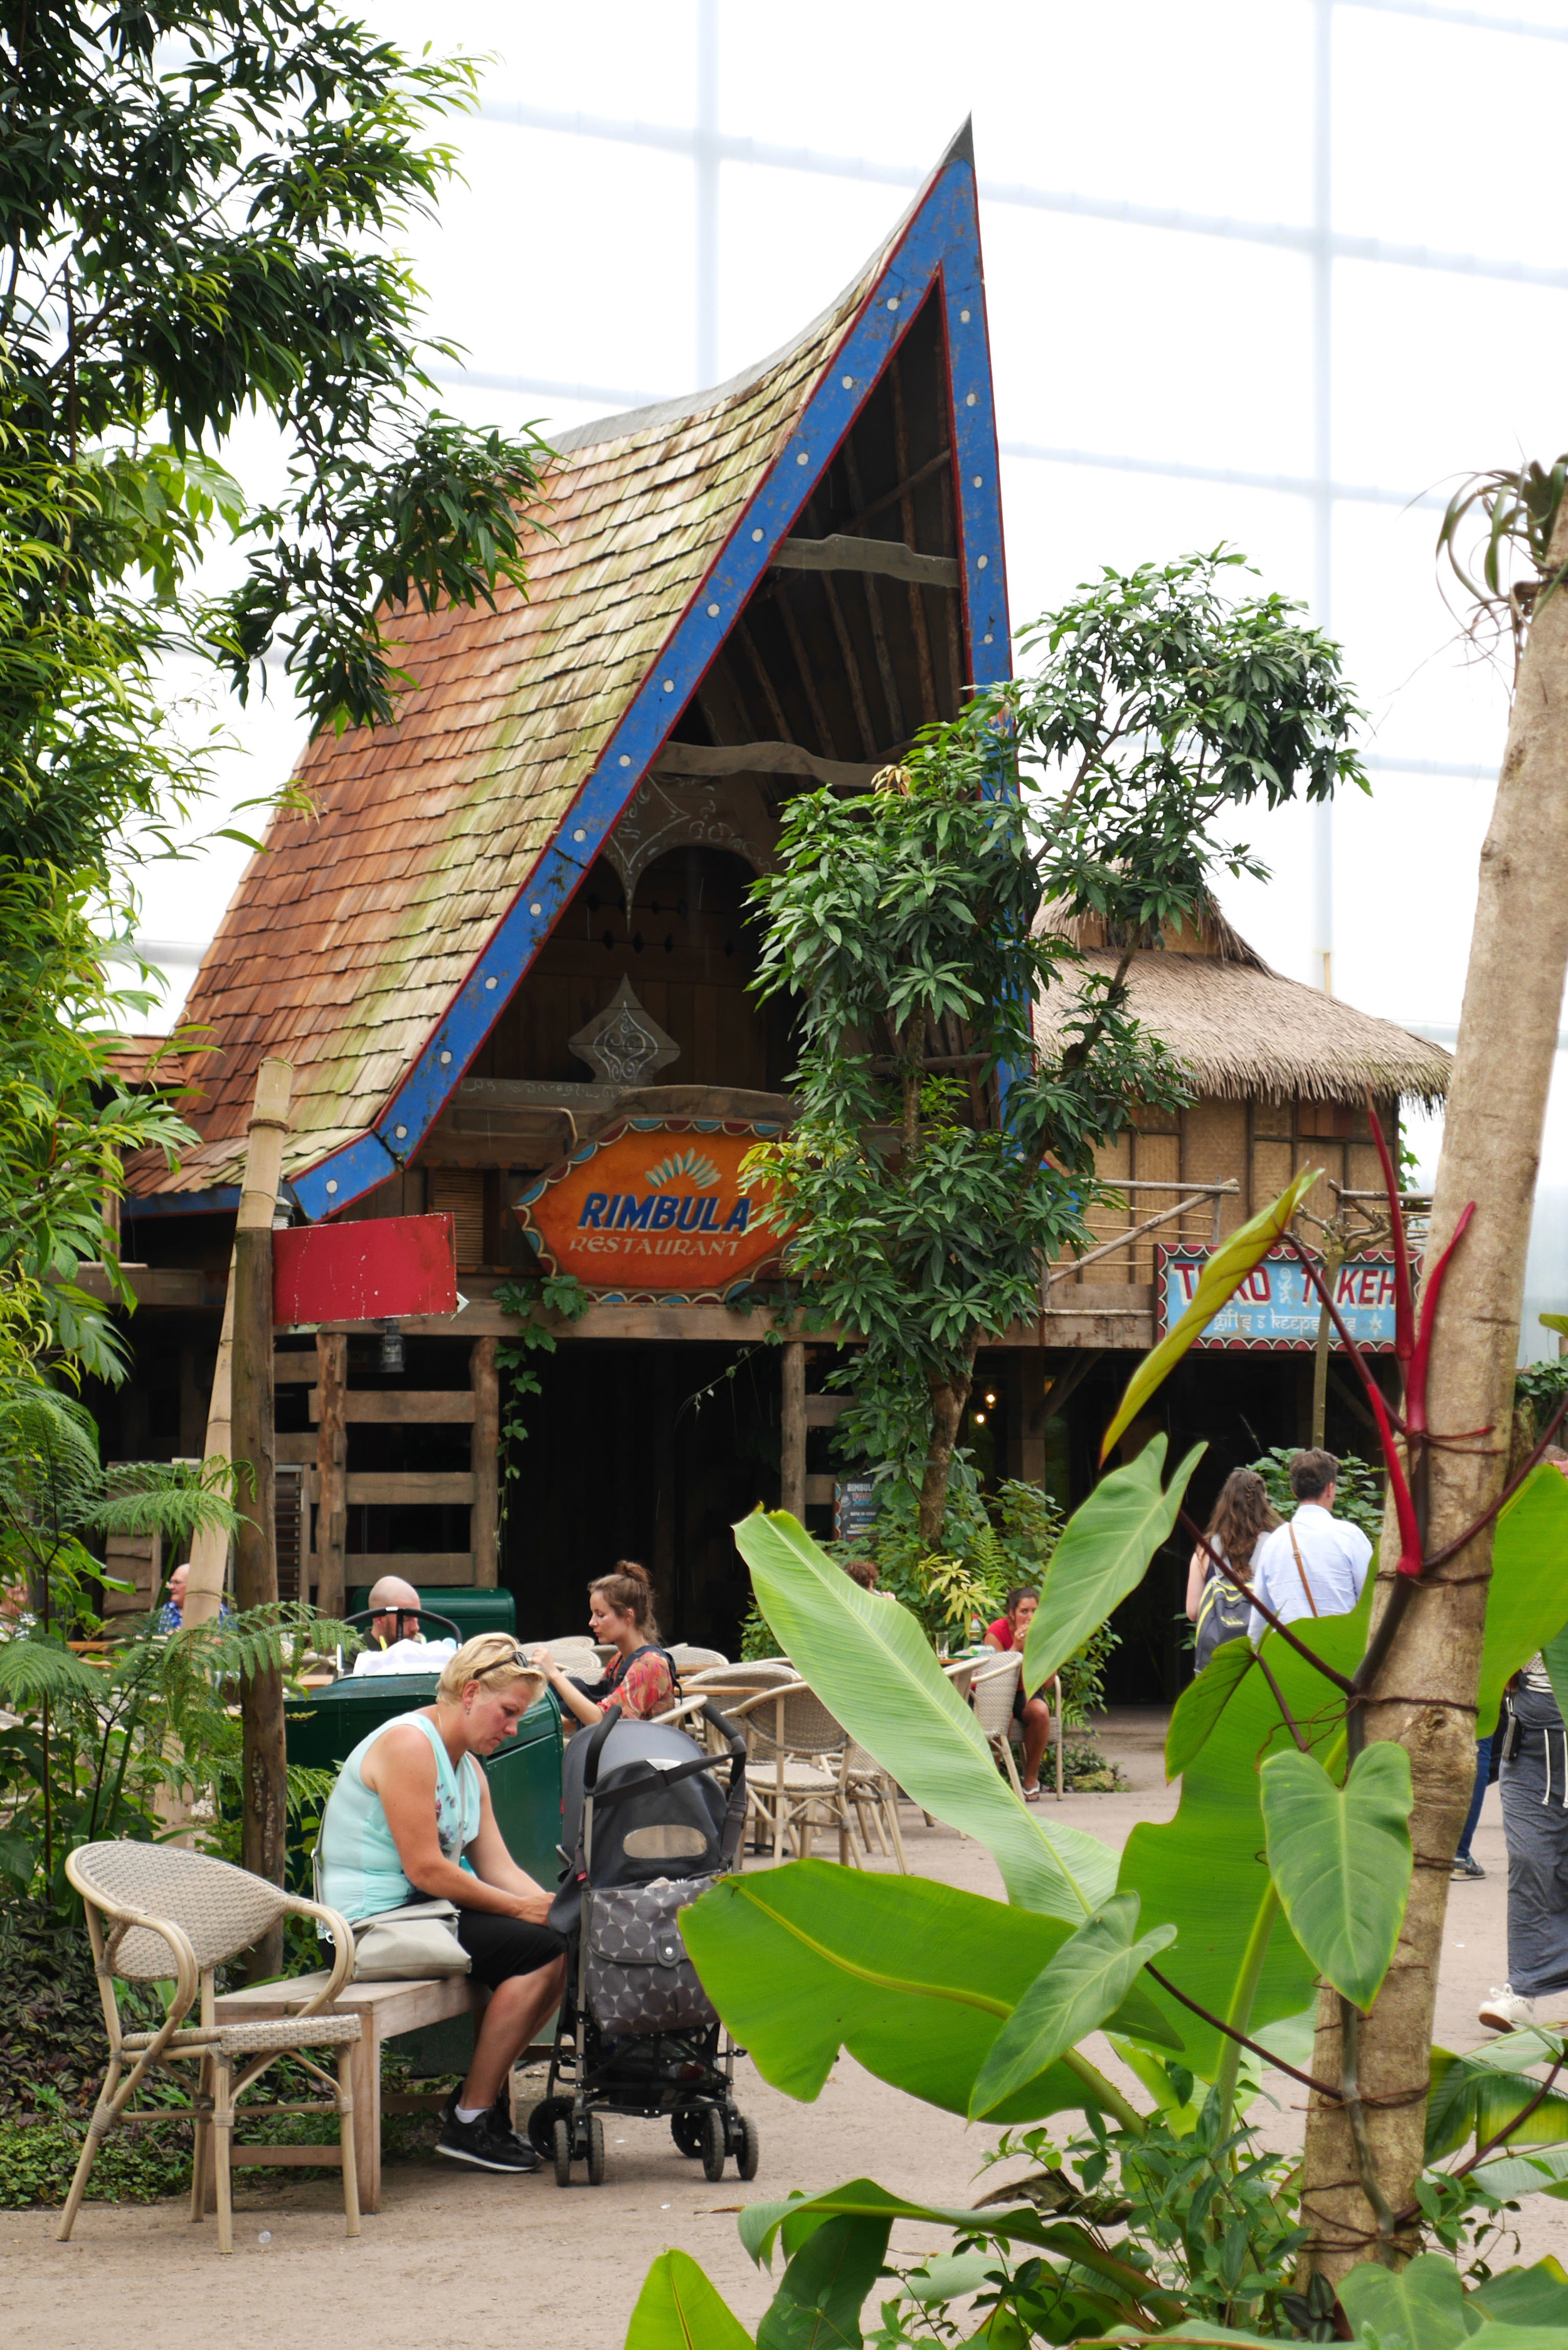 RIMBULA RESTAURANT WILDLANDS <strong>| A tropical asian food experience inside Europe's largest indoor rainforest</strong>